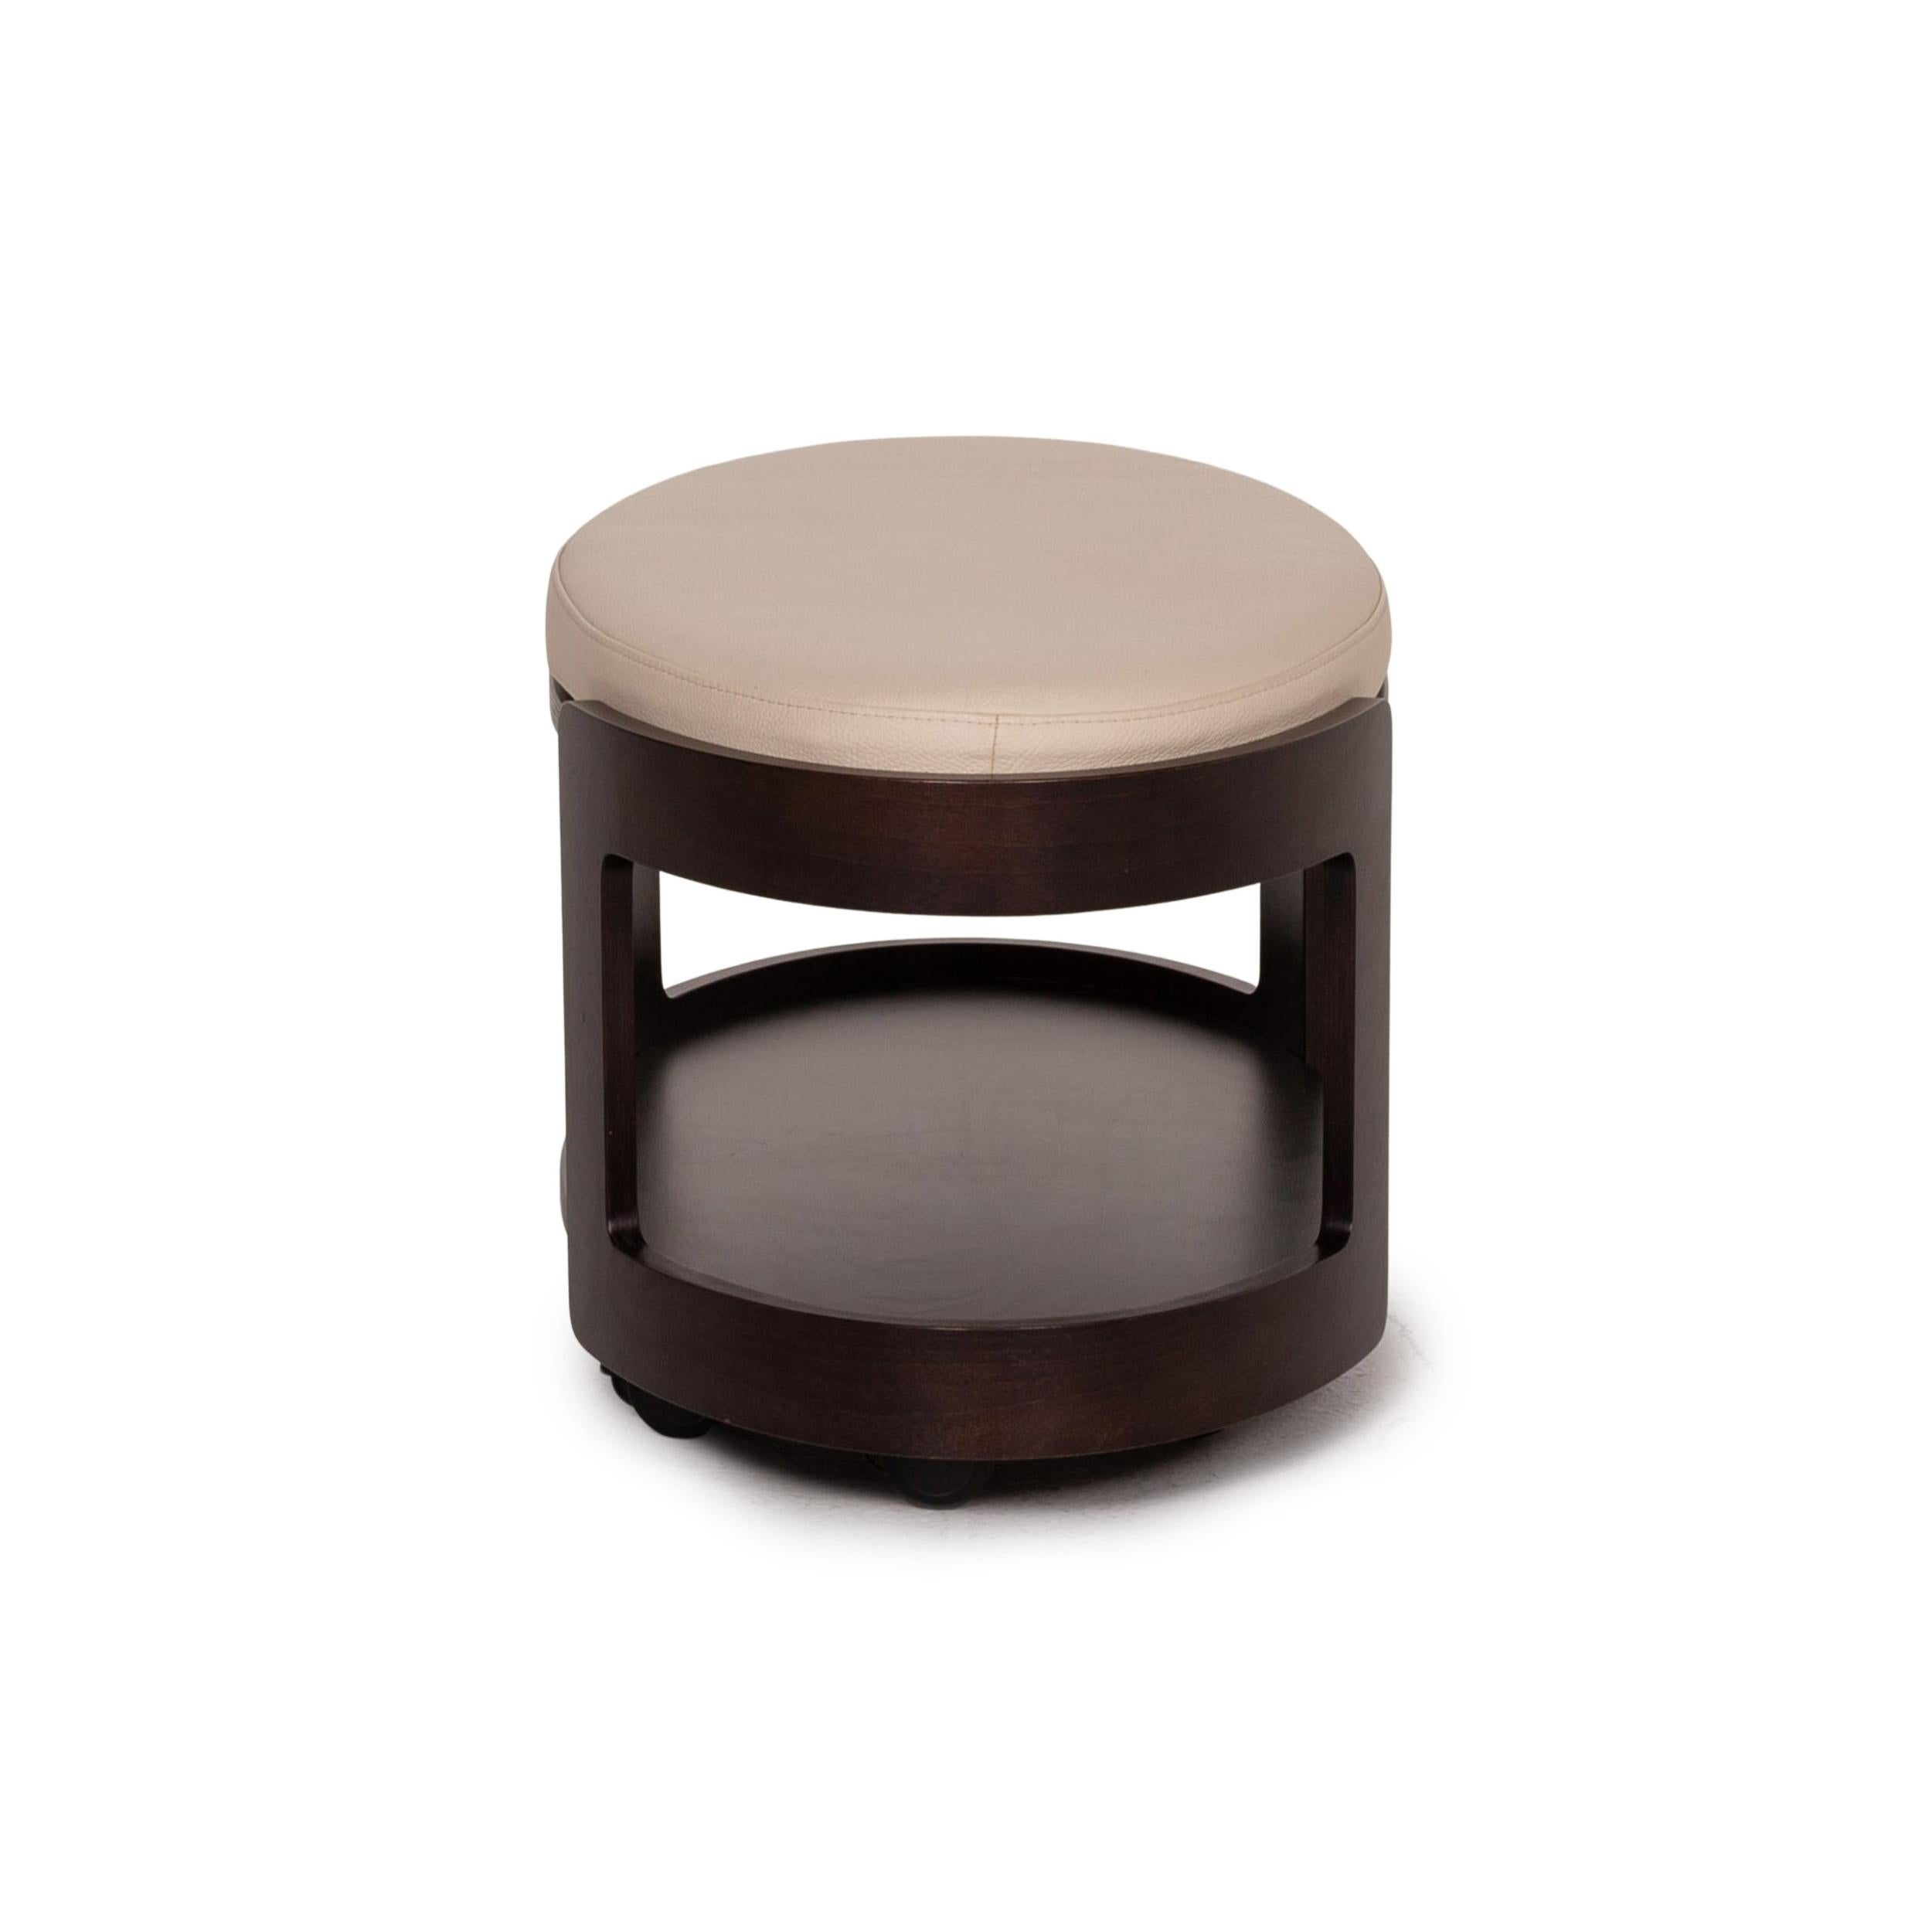 Stressless Leather Wood Coffee Table Dark Brown Cream Table Stool For Sale At 1stdibs - Stressless Tisch